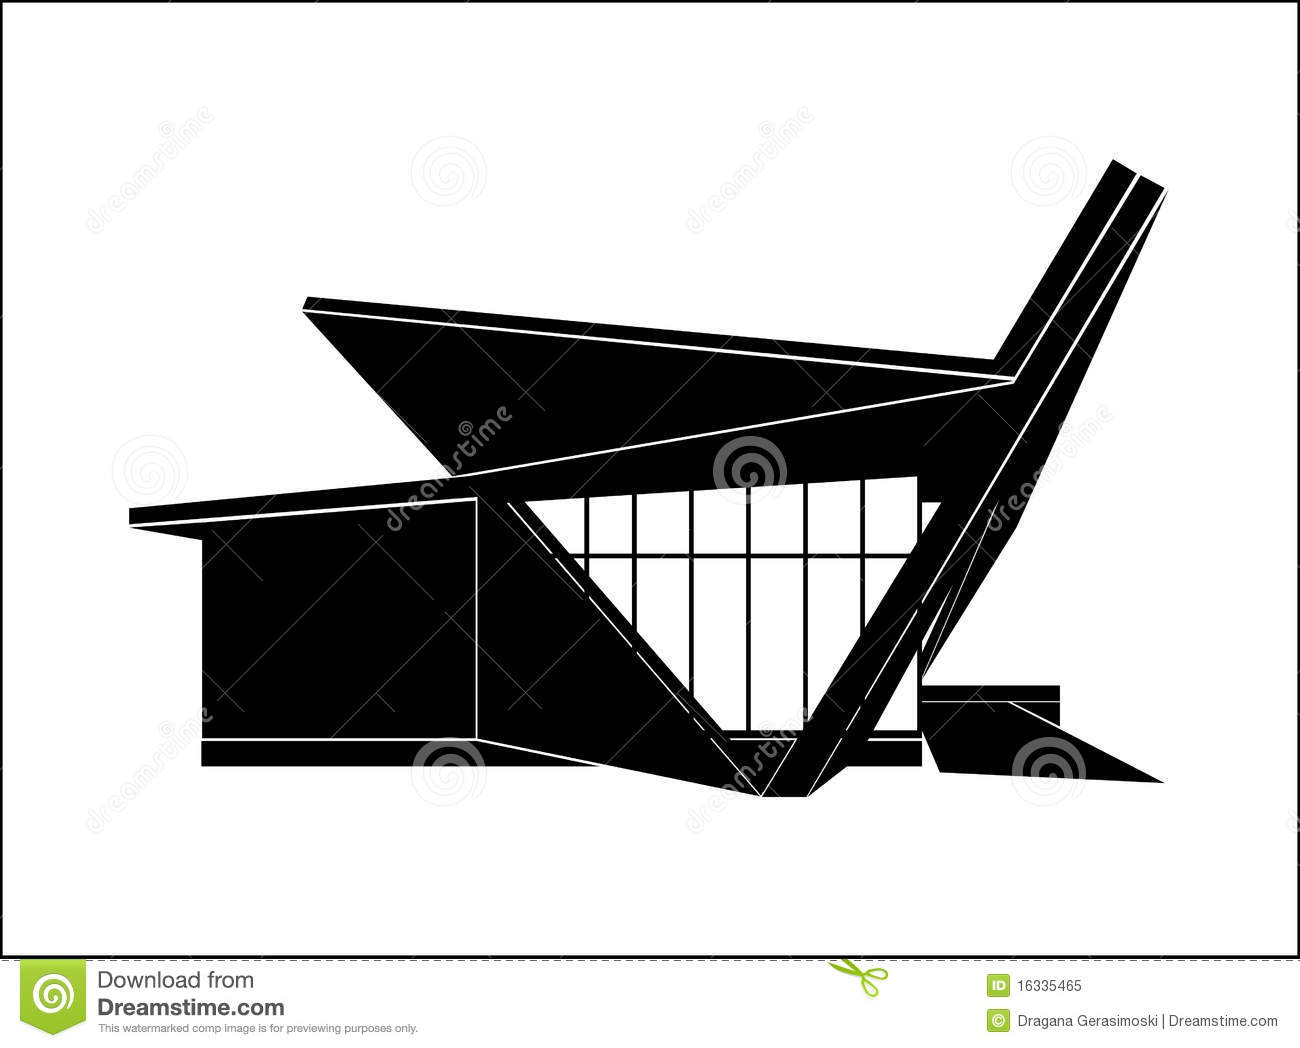 Modern House, Vector oyalty Free Stock Photo - Image: 16335465 - ^